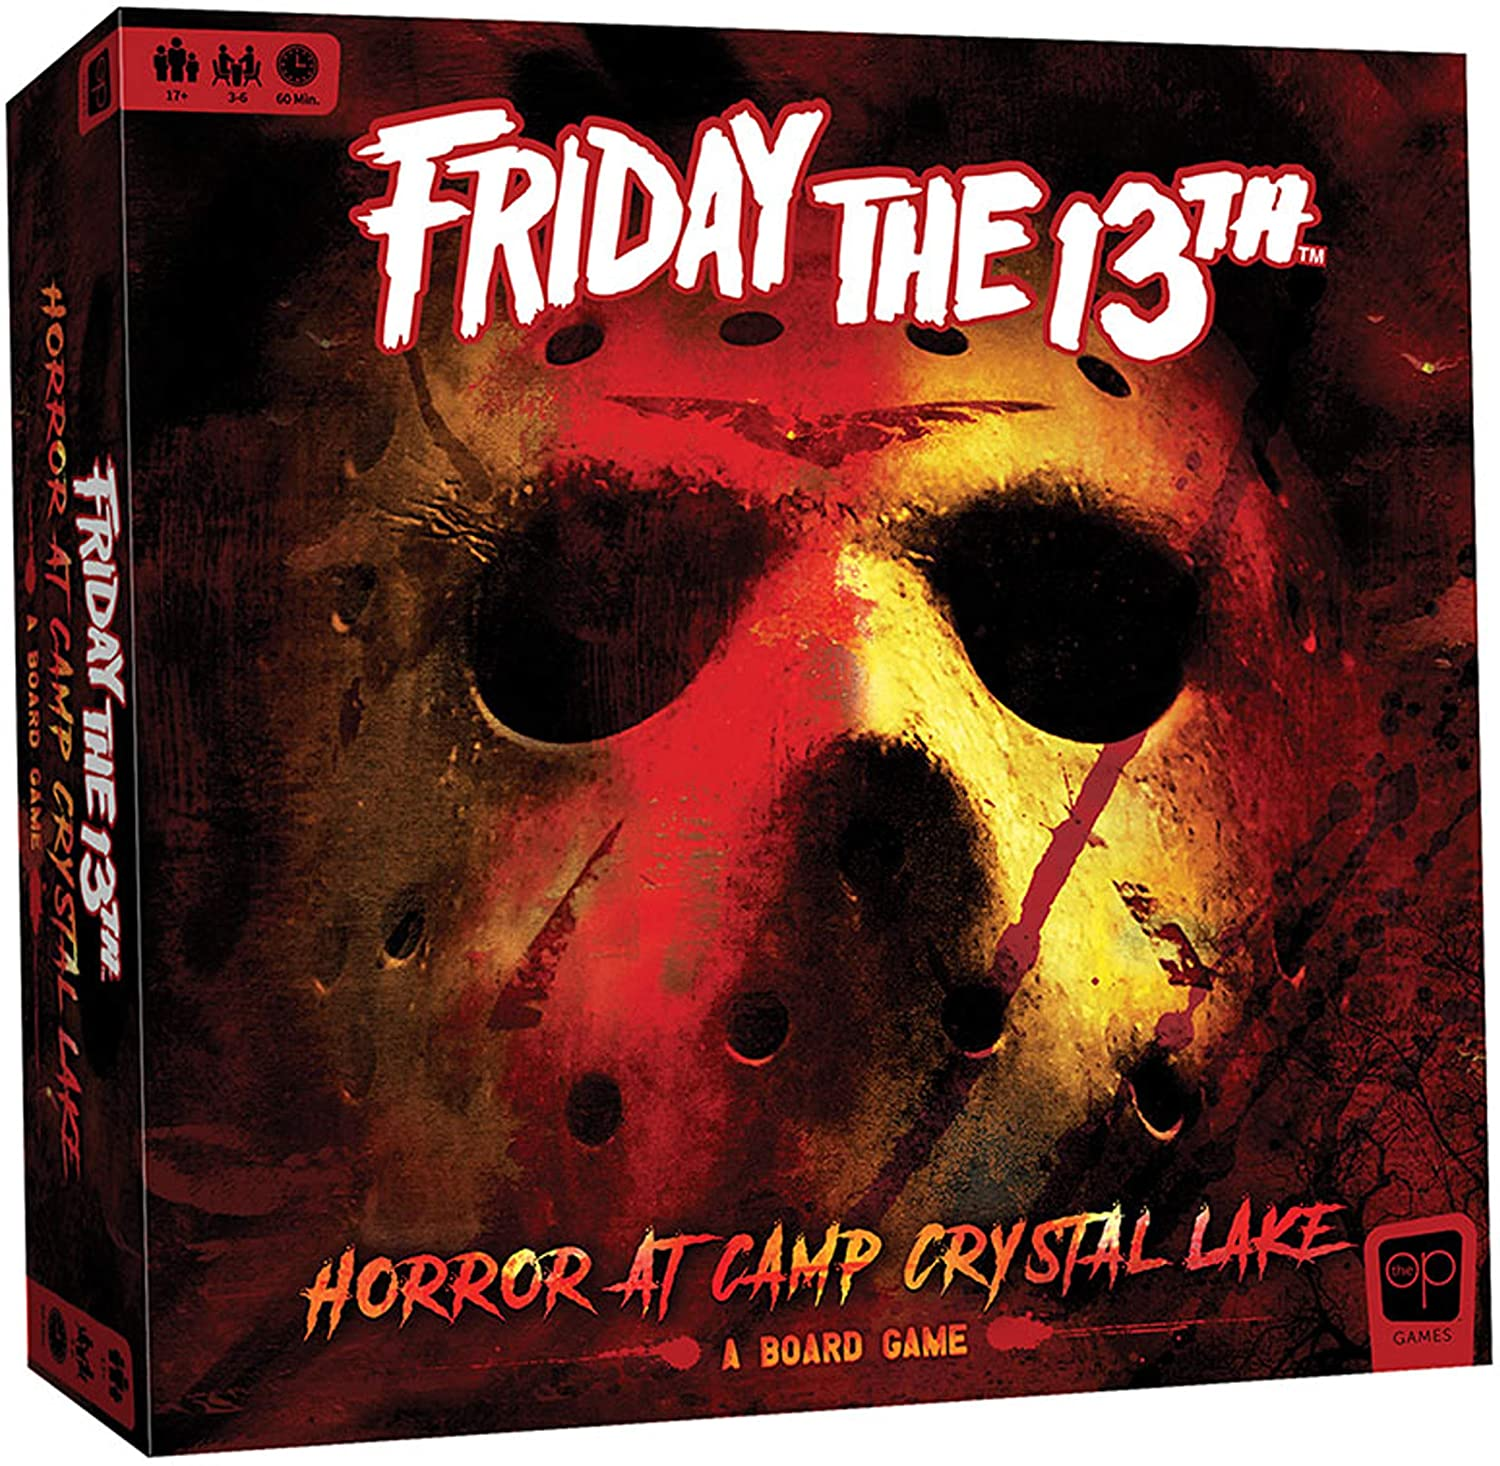 Friday the 13th | Multizone: Comics And Games